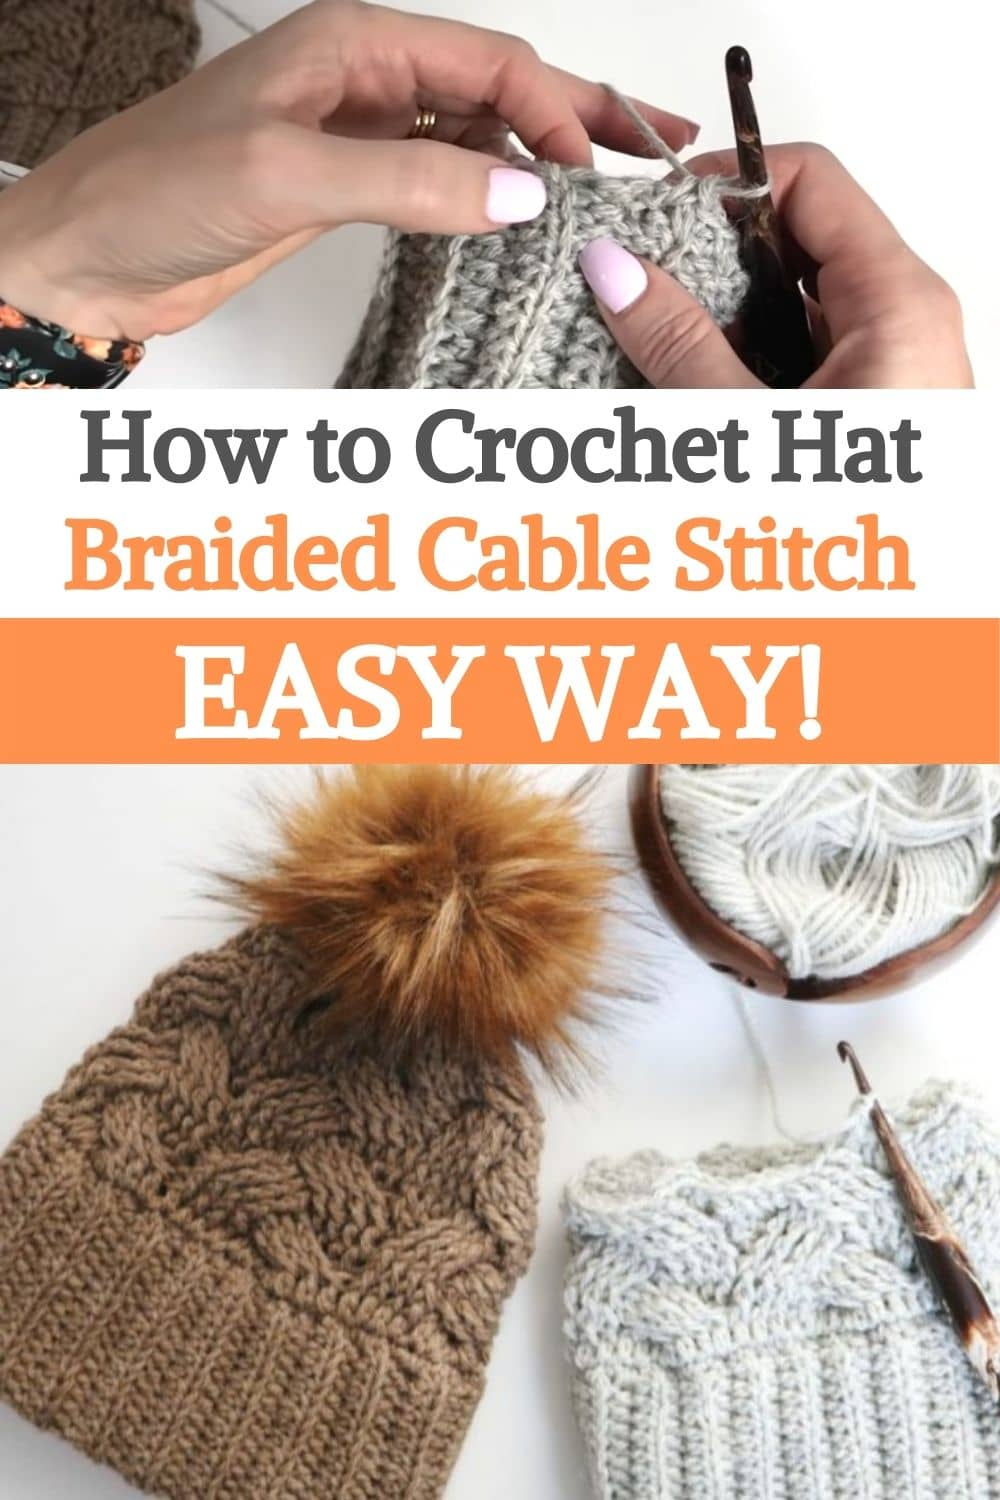 Hat Braided Cable Stitch